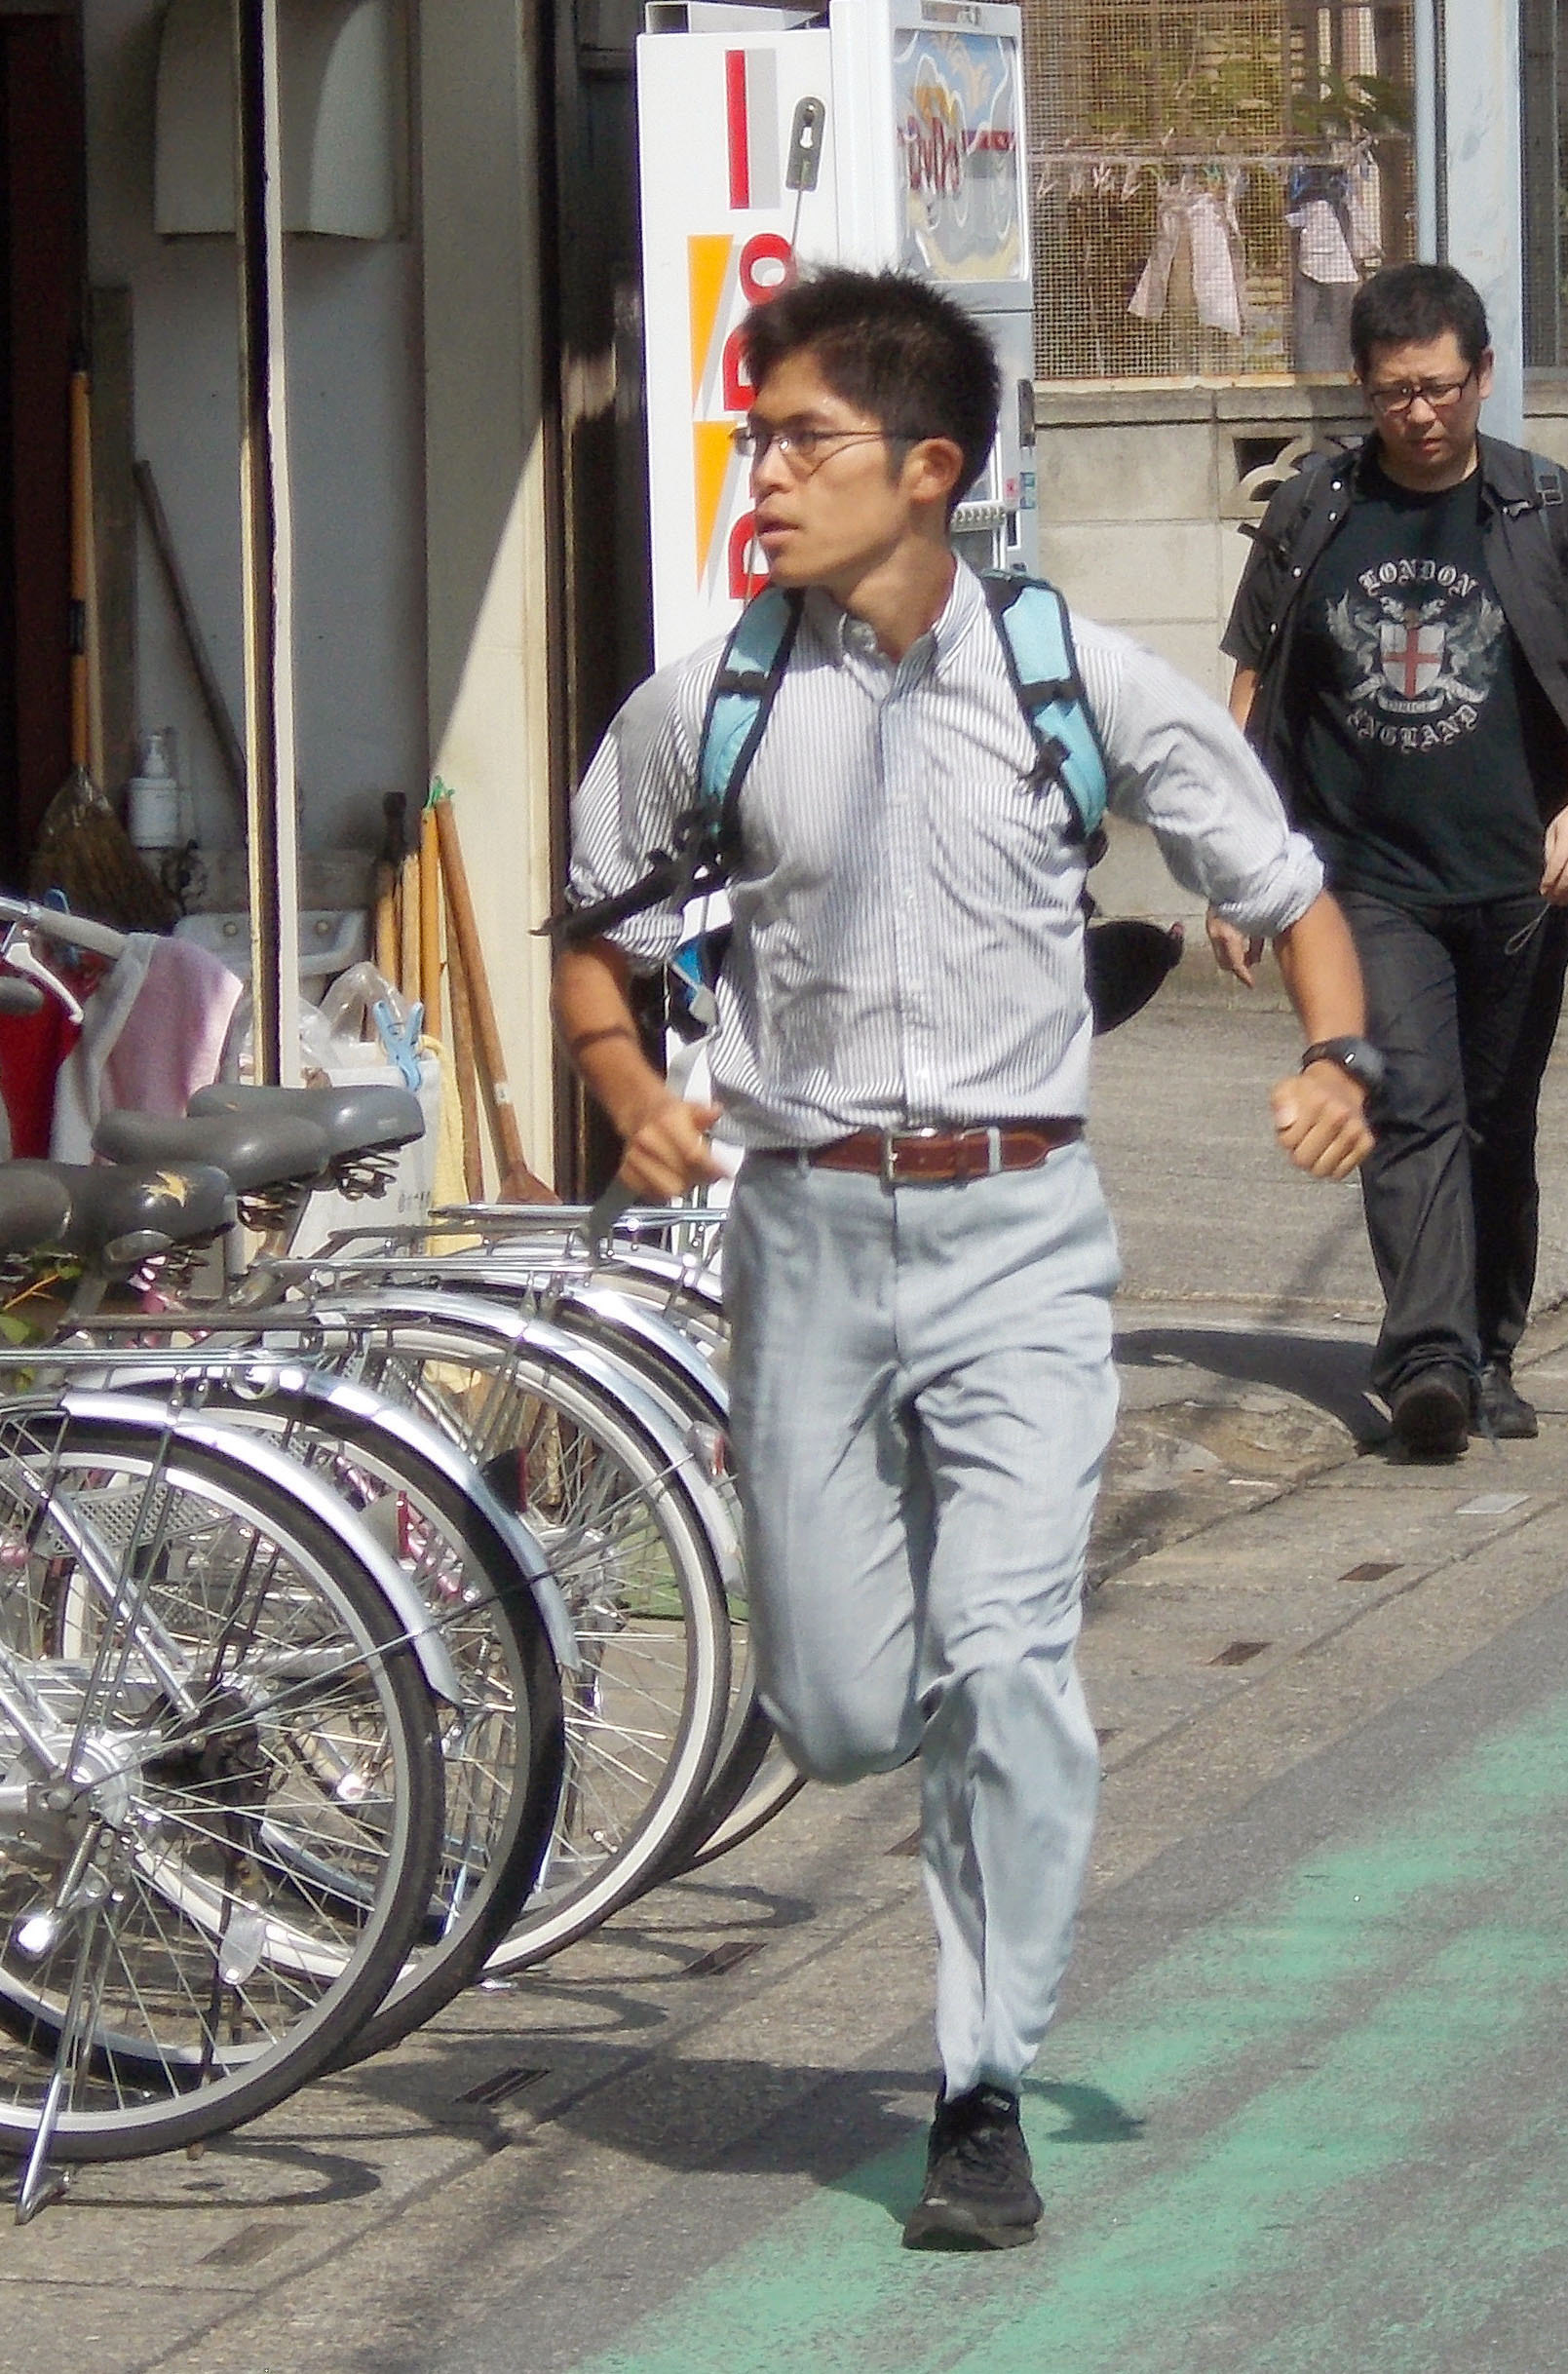 'Citizen runner' takes unconventional path | The Japan Times